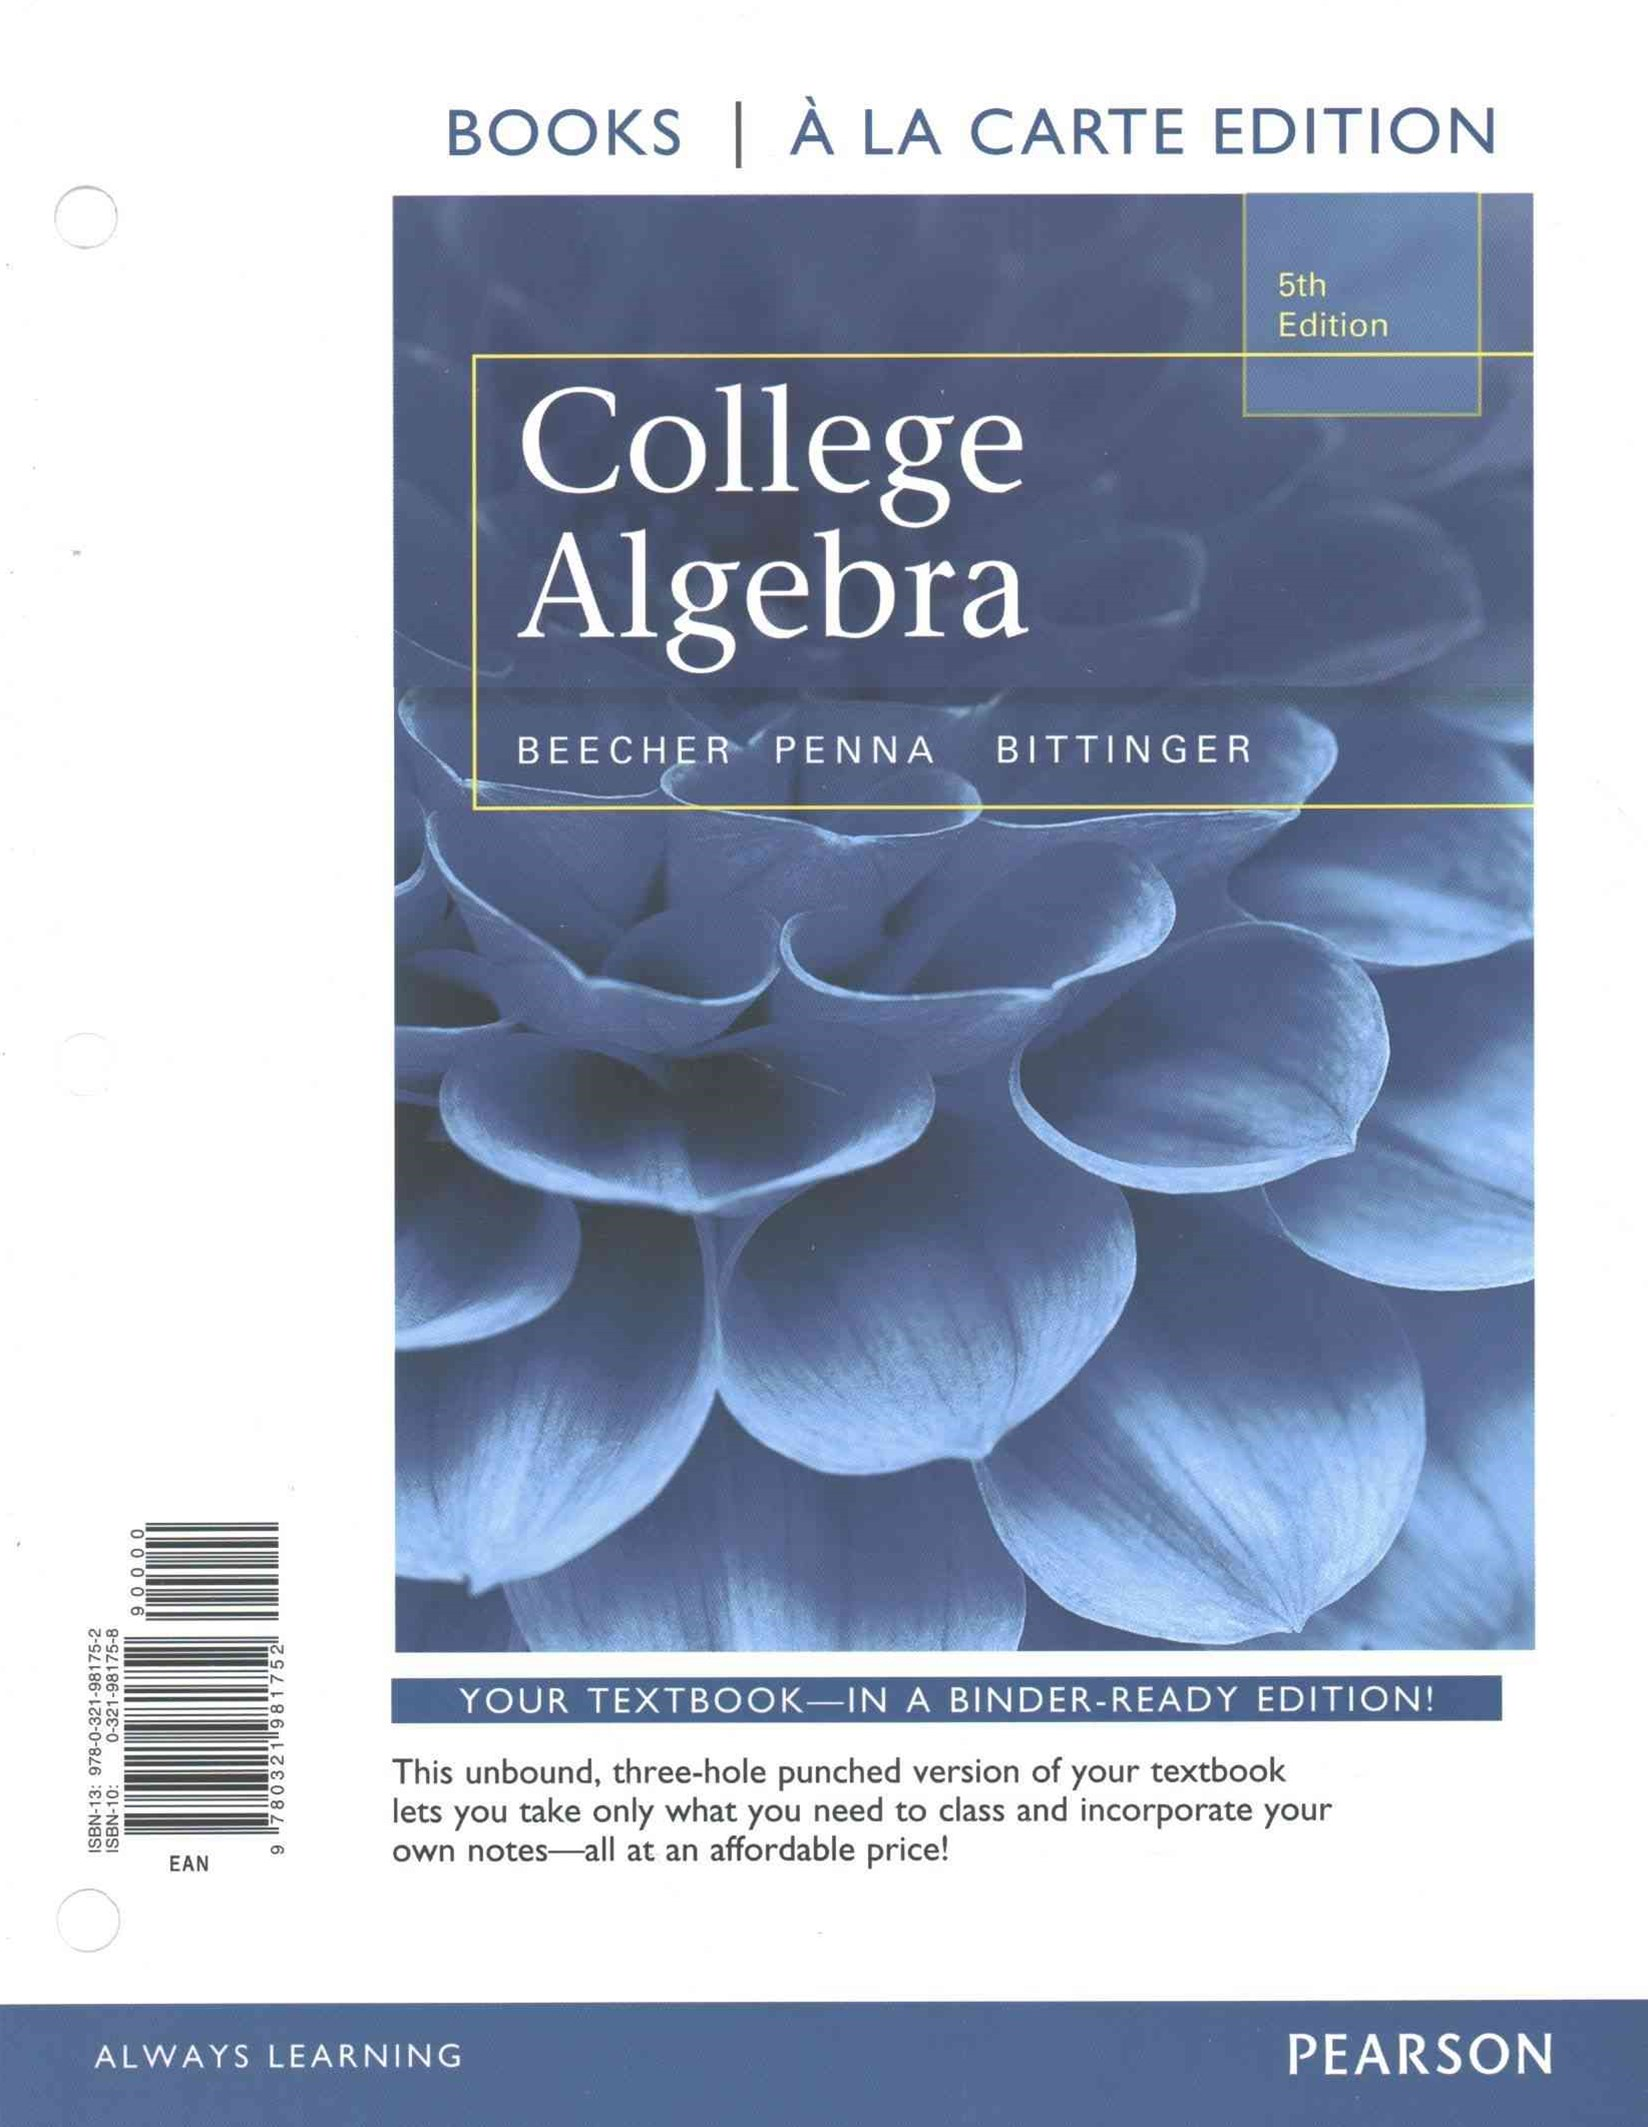 College Algebra with Integrated Review, Books a la Carte Edition Plus MML Student Access Card and S